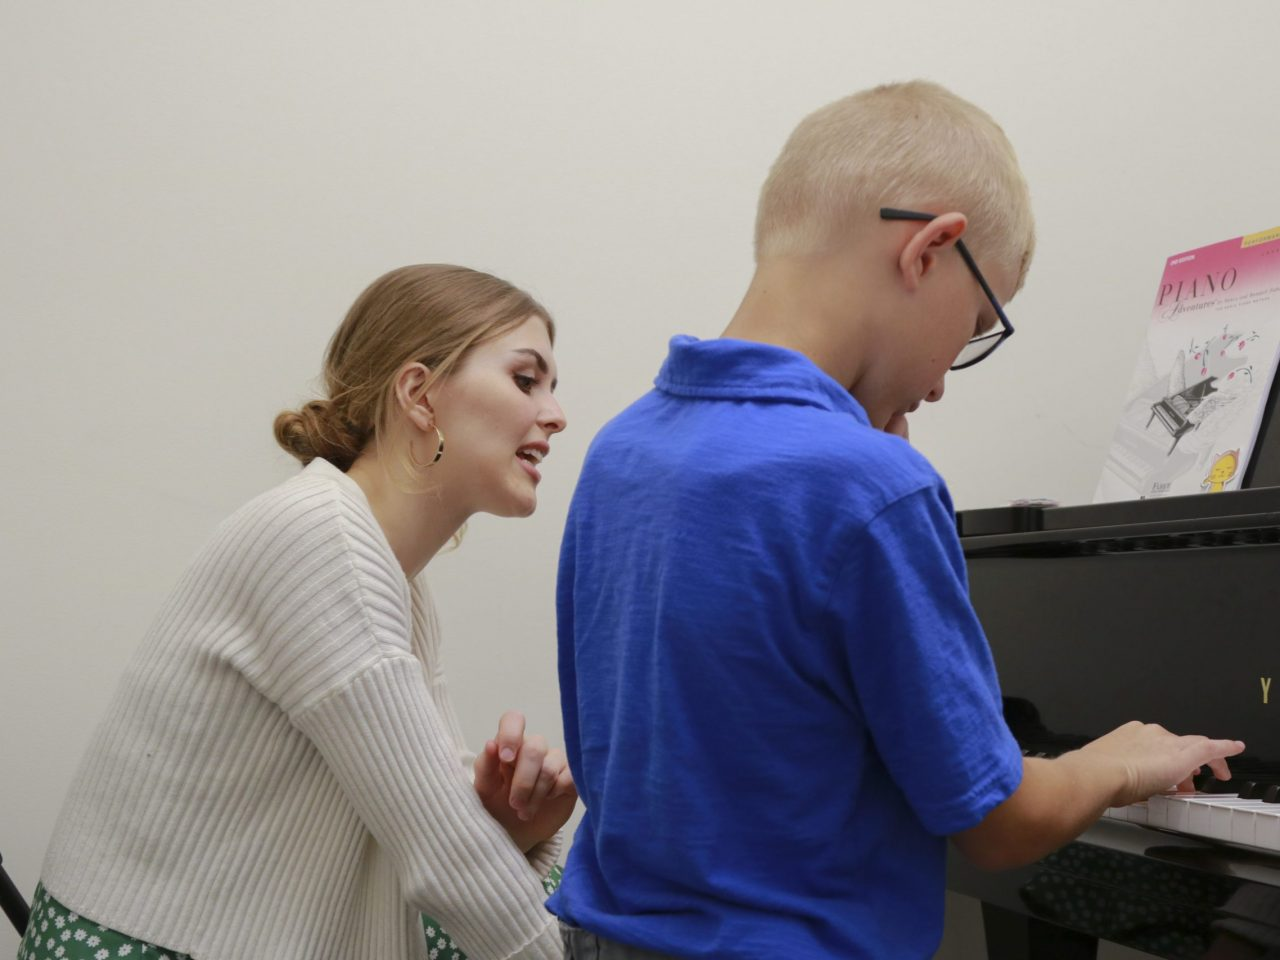 a teacher with a piano student